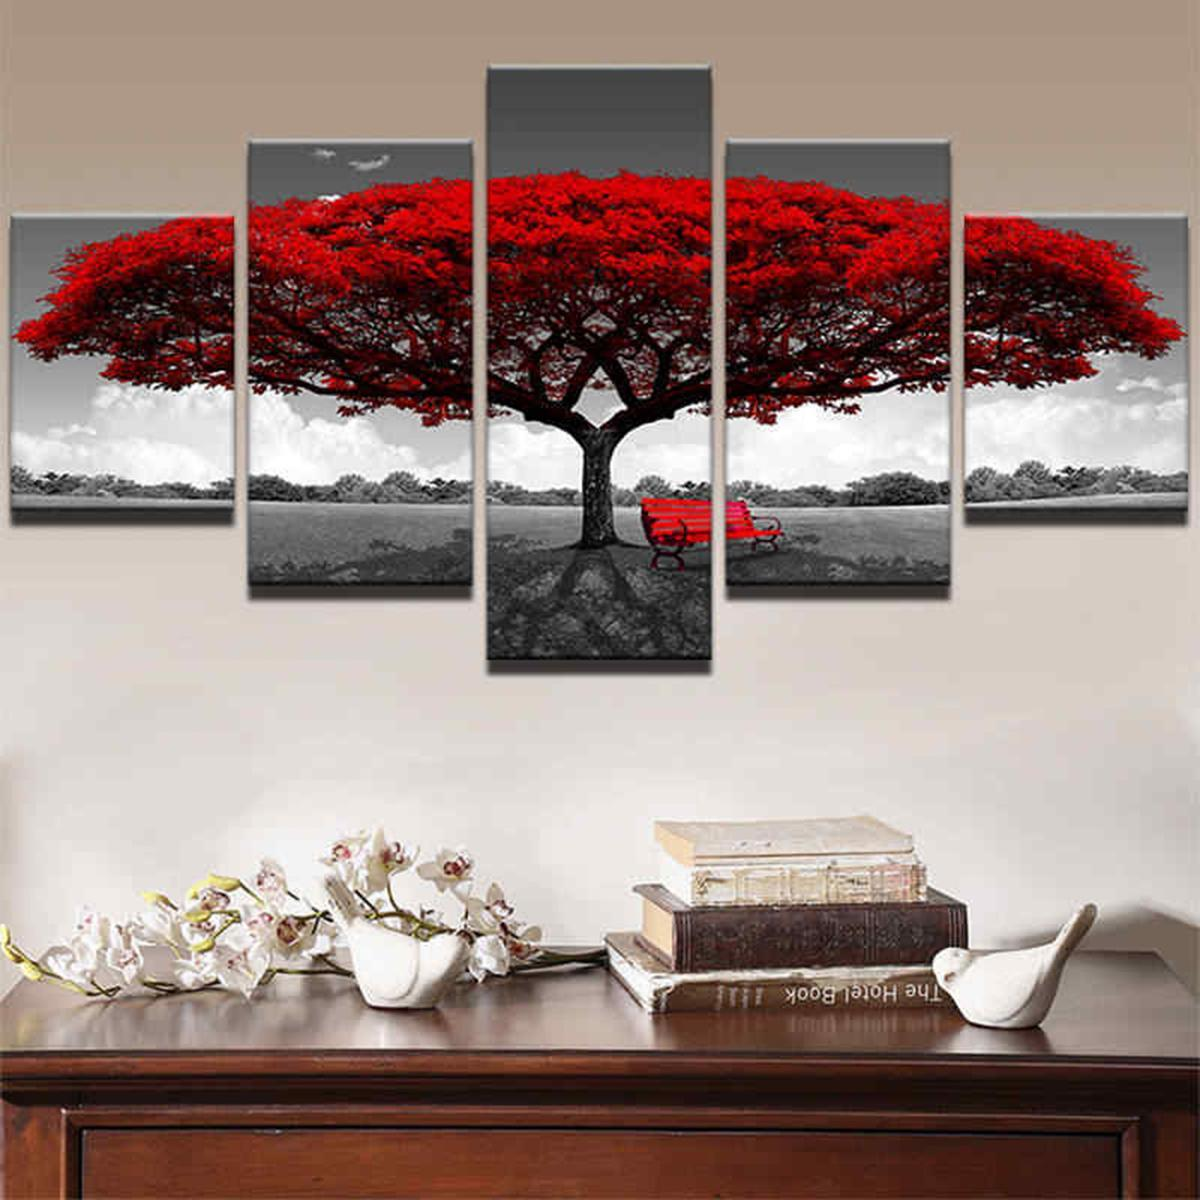 Online Home Decor Shopping In Bangladesh At Best Price Daraz Com Bd